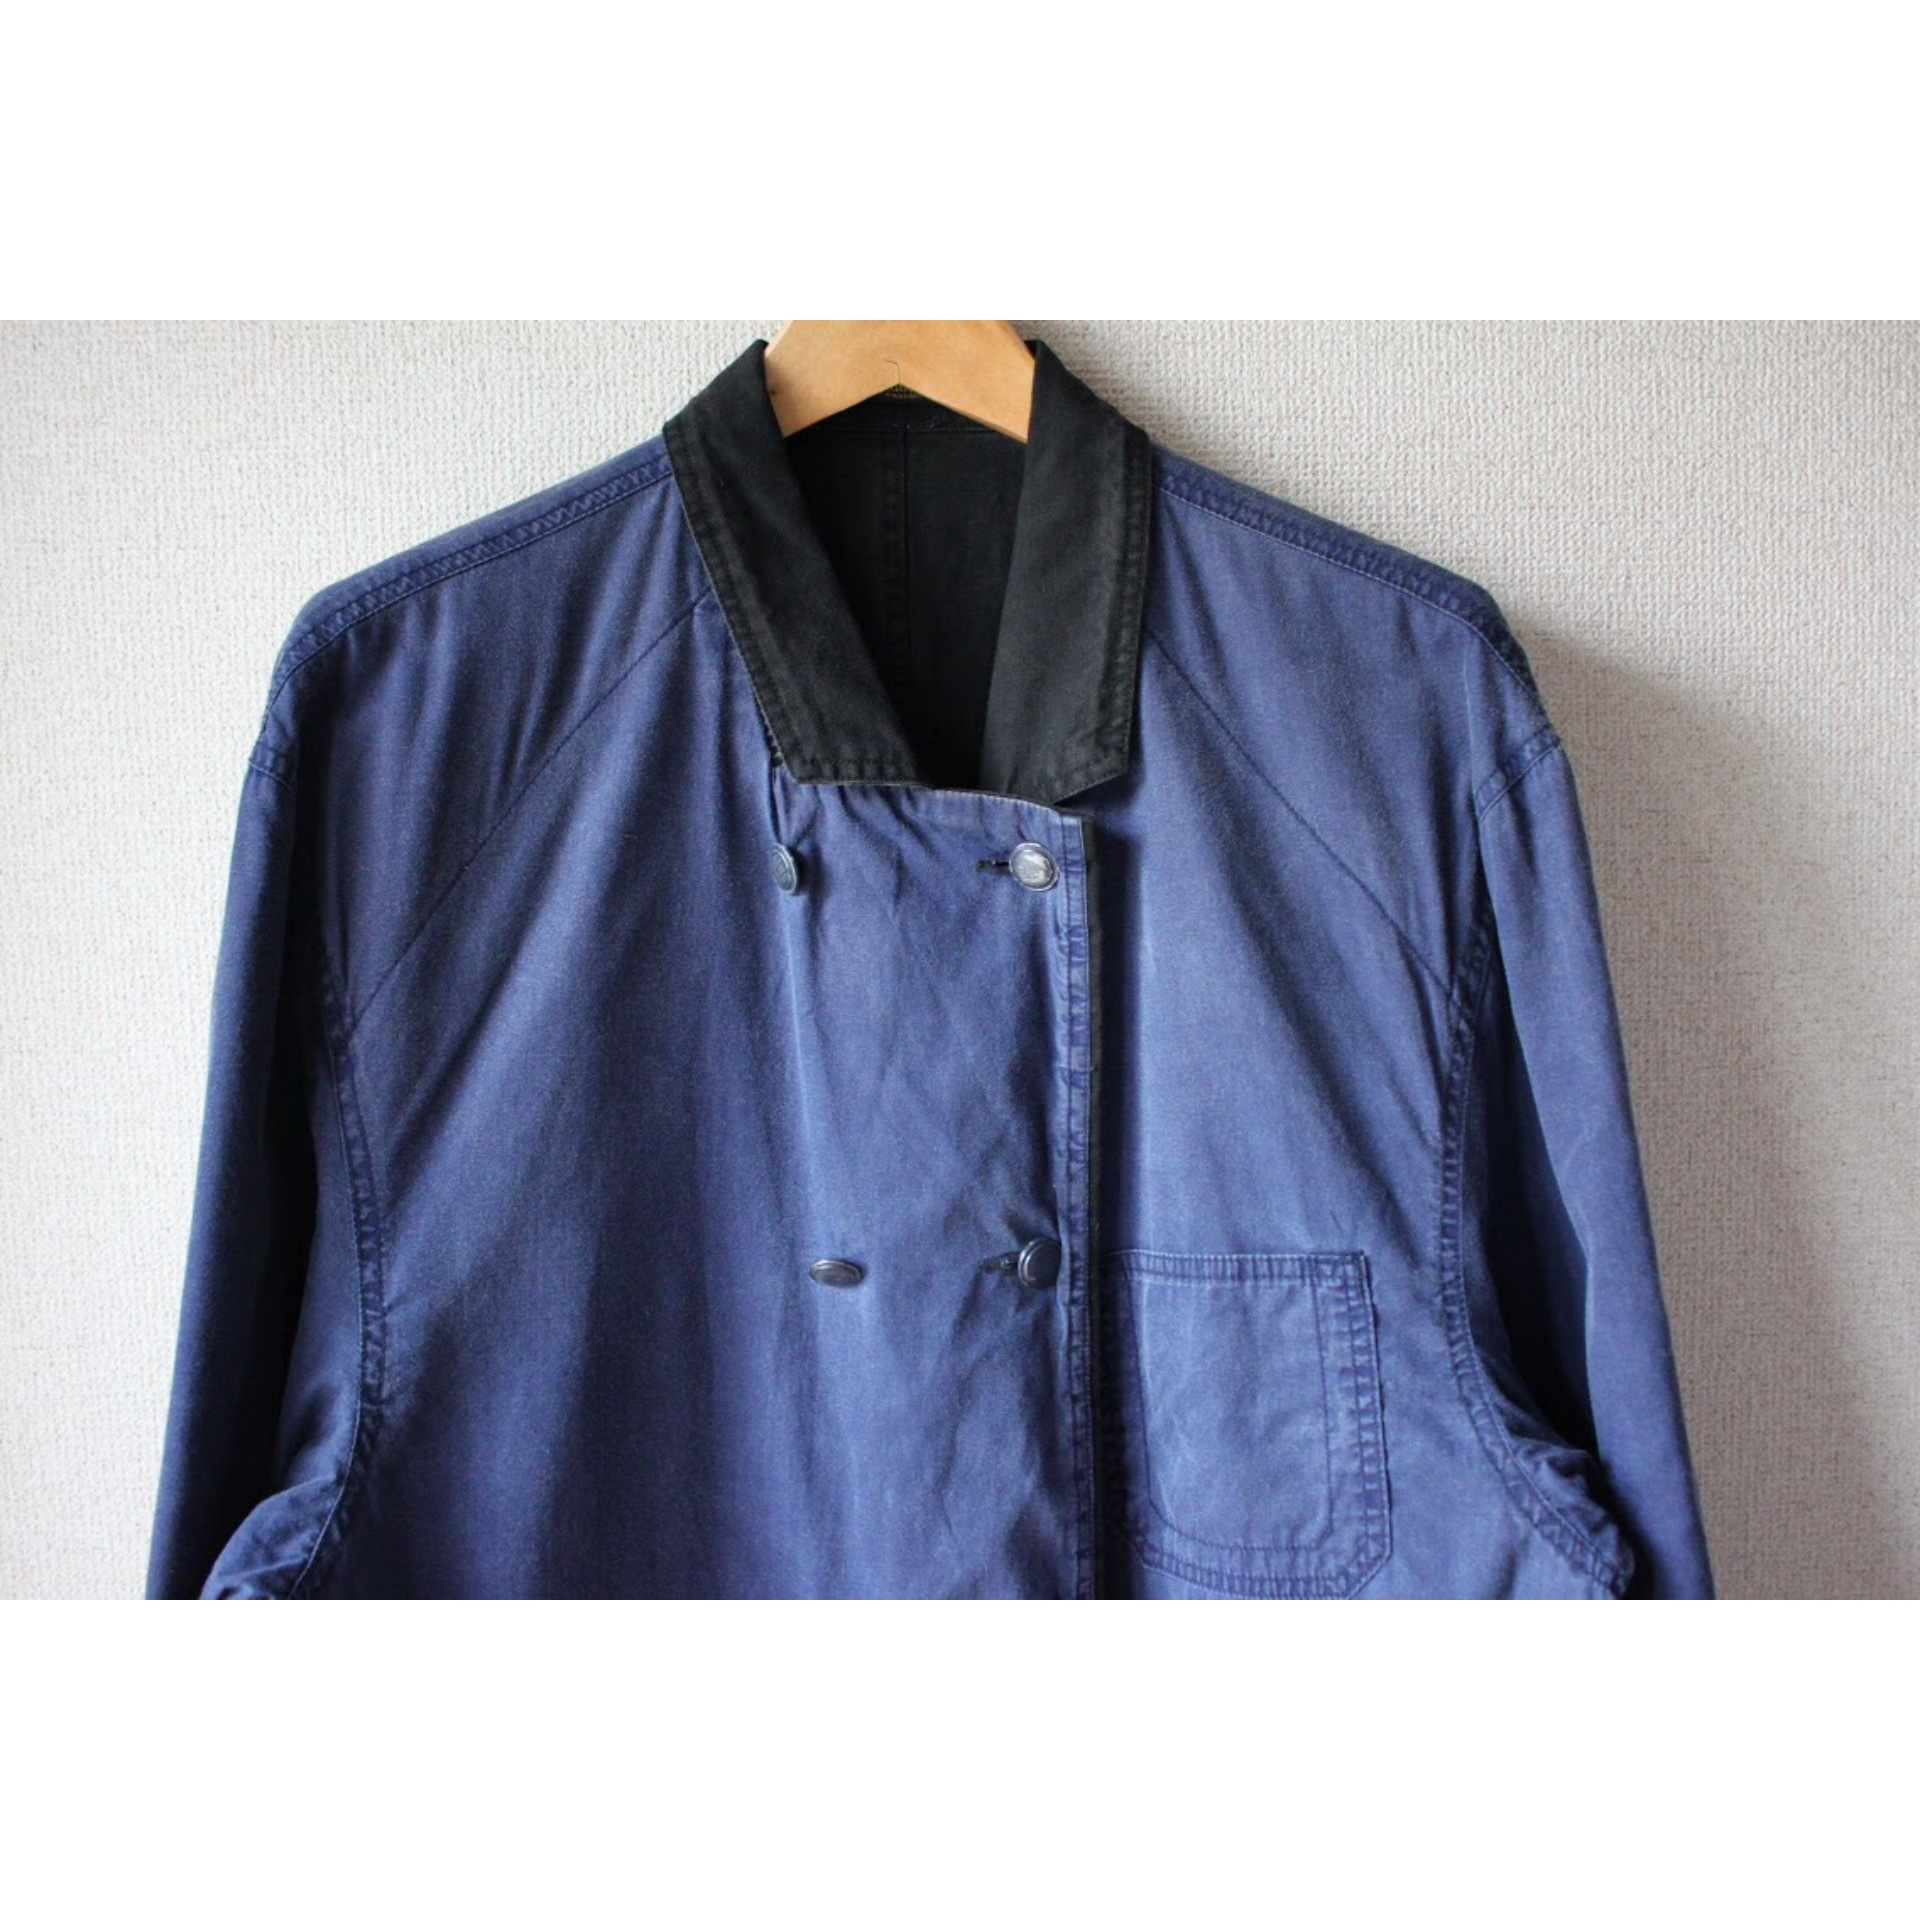 Vintage reversible jacket by Marithé + François Girbaud